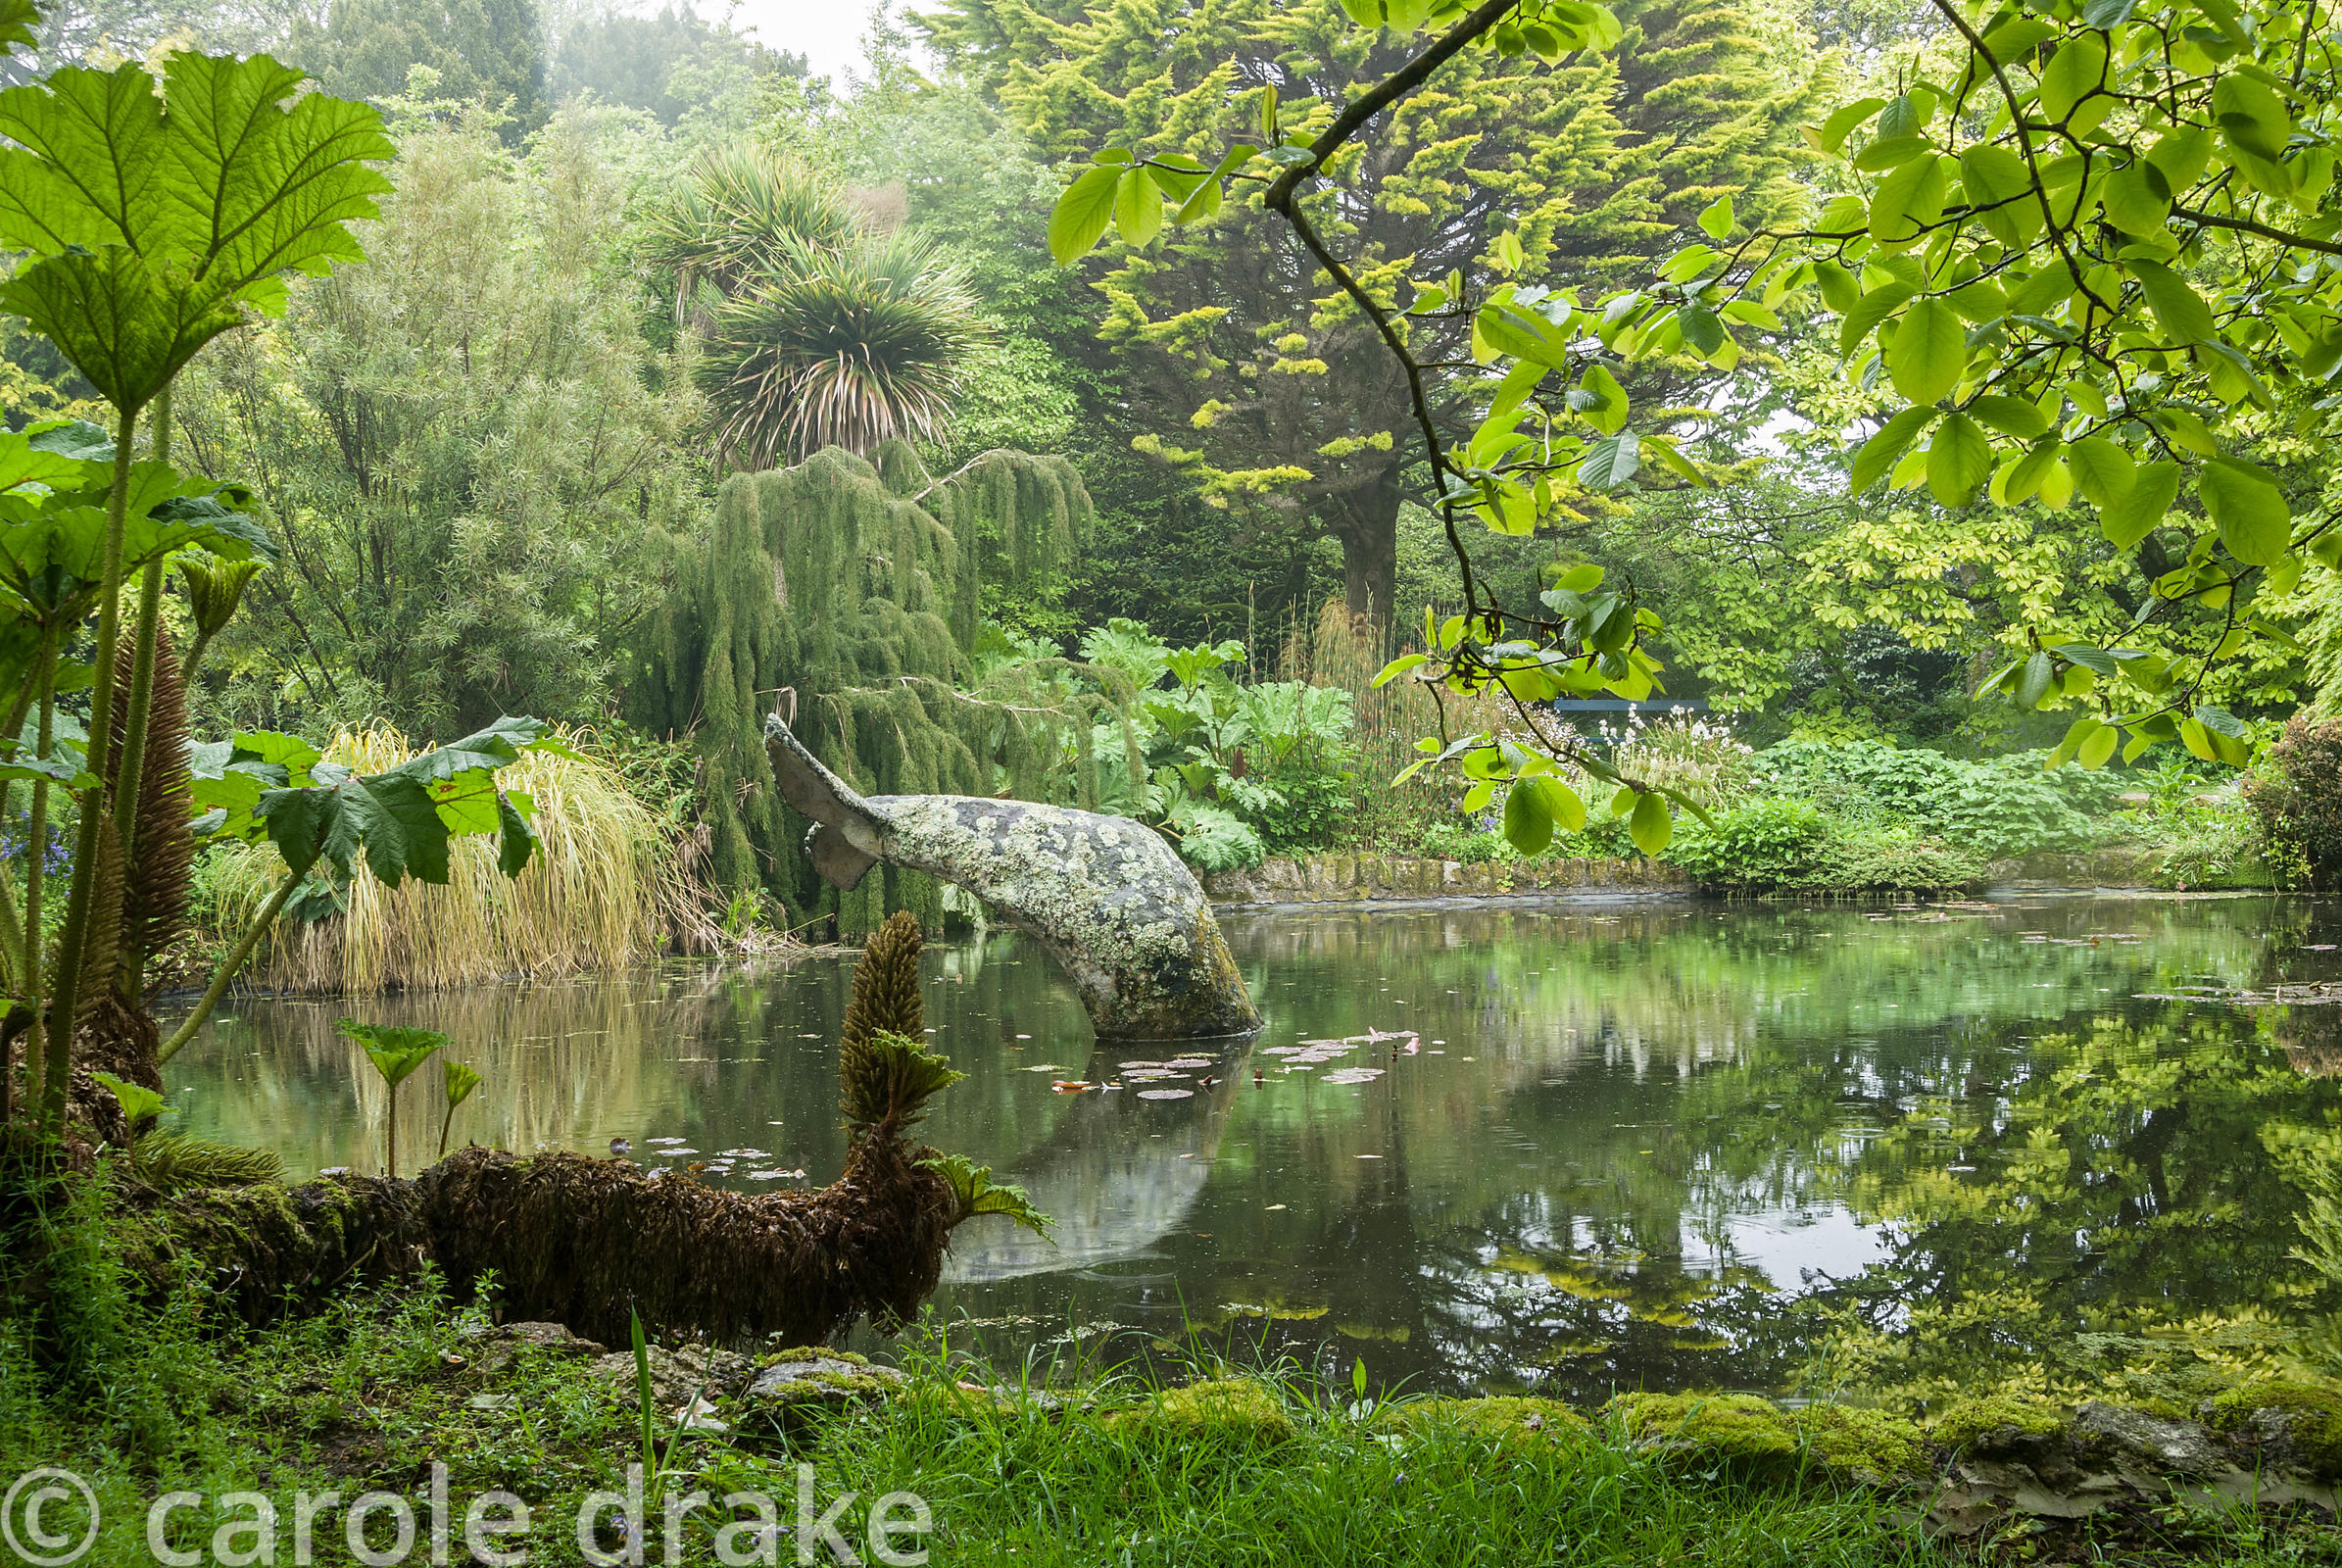 Whale's tail sculpture in the pond  surrounded by Gunnera manicata with trees behind including the weeping Lagarostrobos fran...